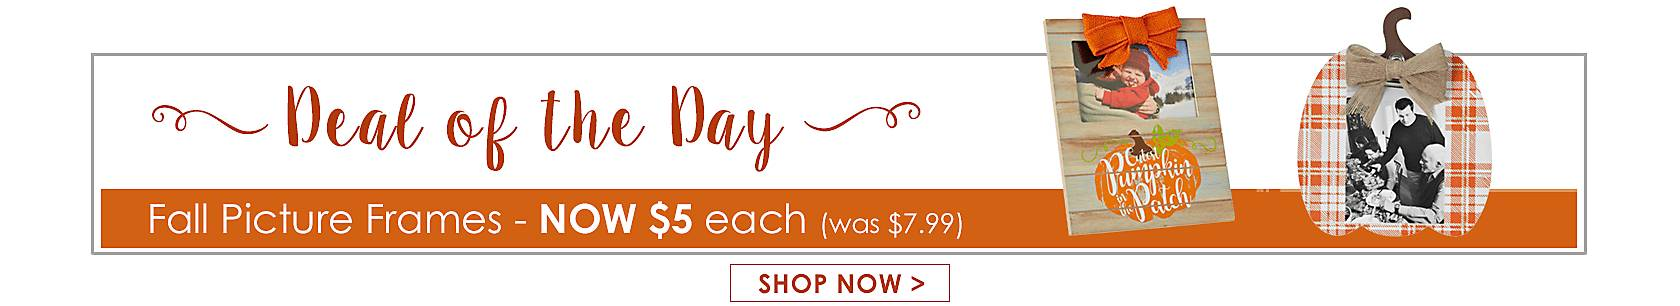 Deal of the Day -  Fall Picture Frames Now $5 - Shop Now